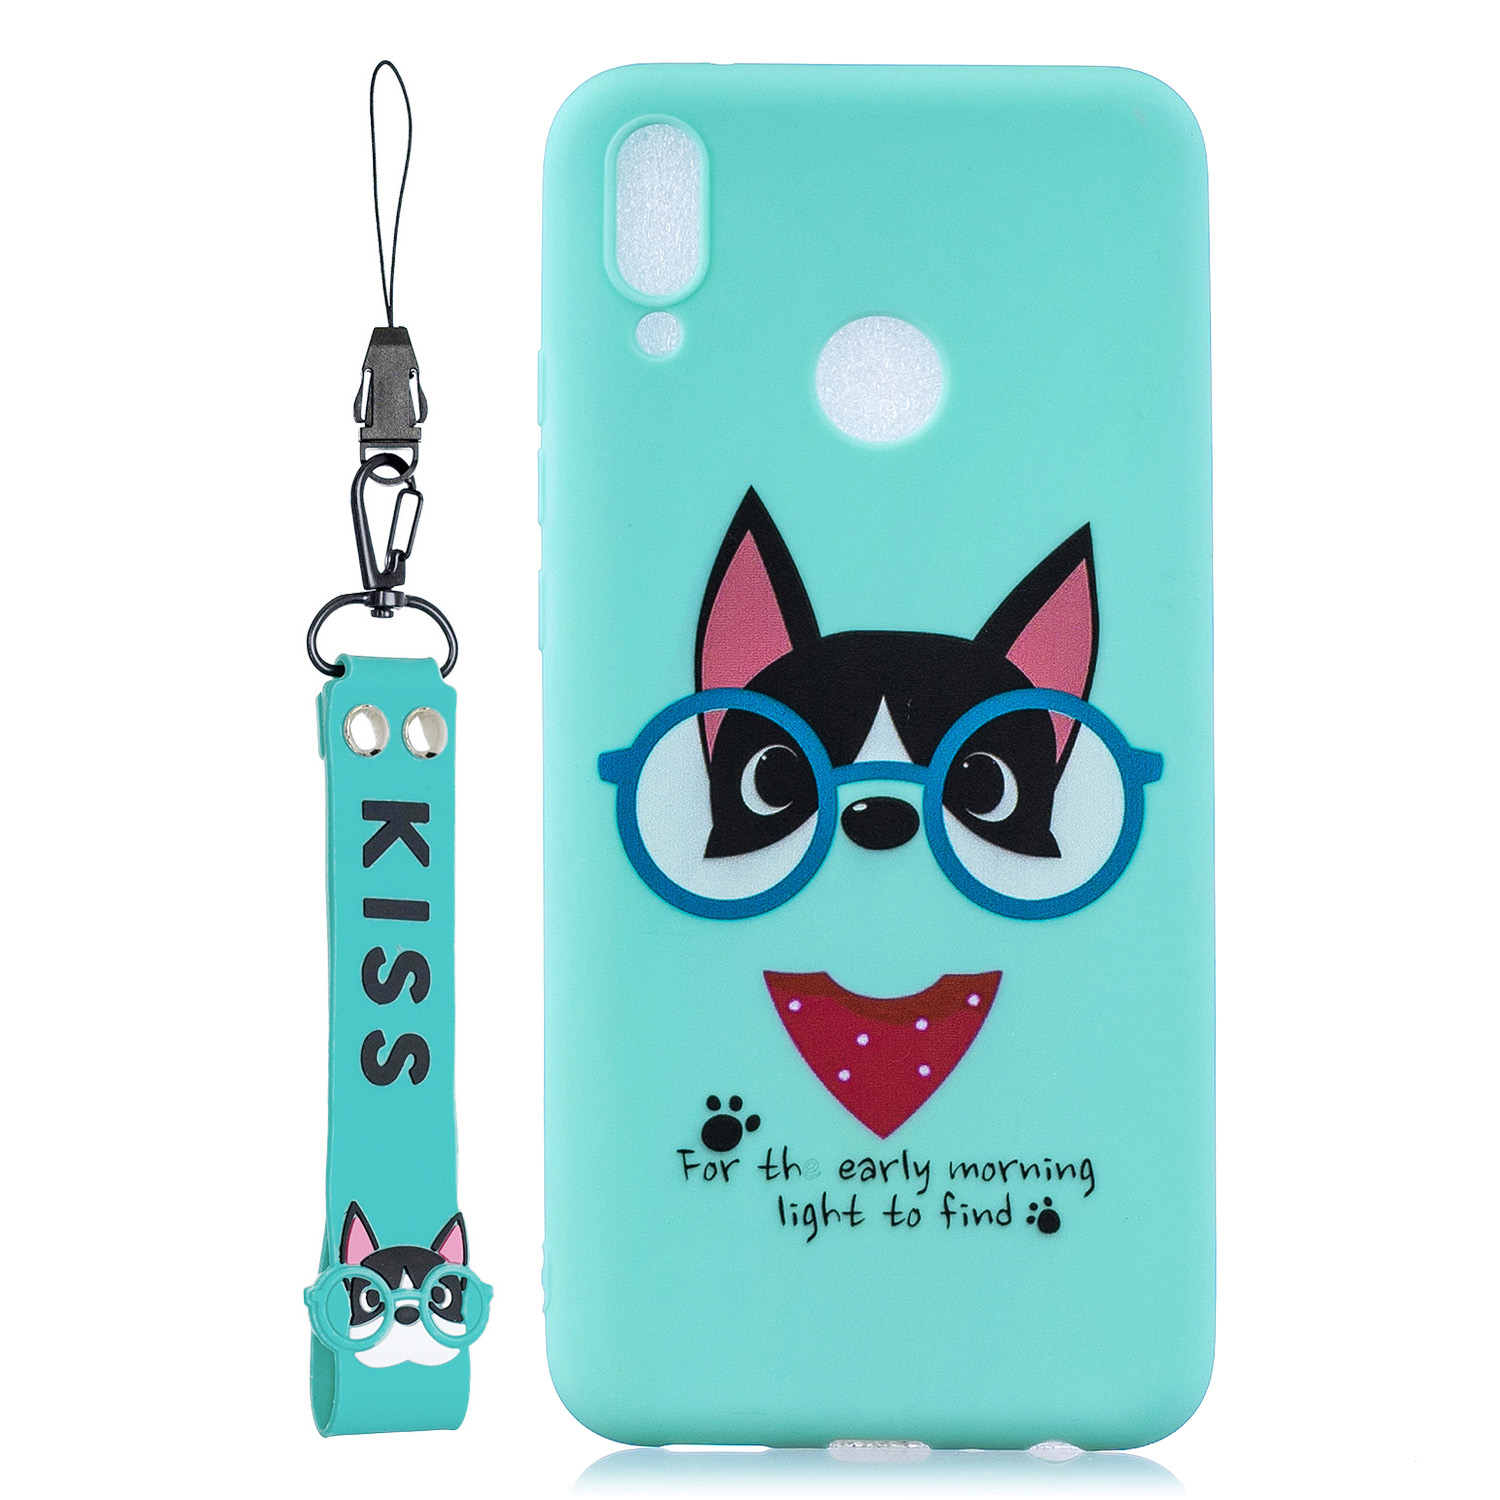 For HUAWEI Y9 2019 Cartoon Lovely Coloured Painted Soft TPU Back Cover Non-slip Shockproof Full Protective Case with Lanyard Light blue